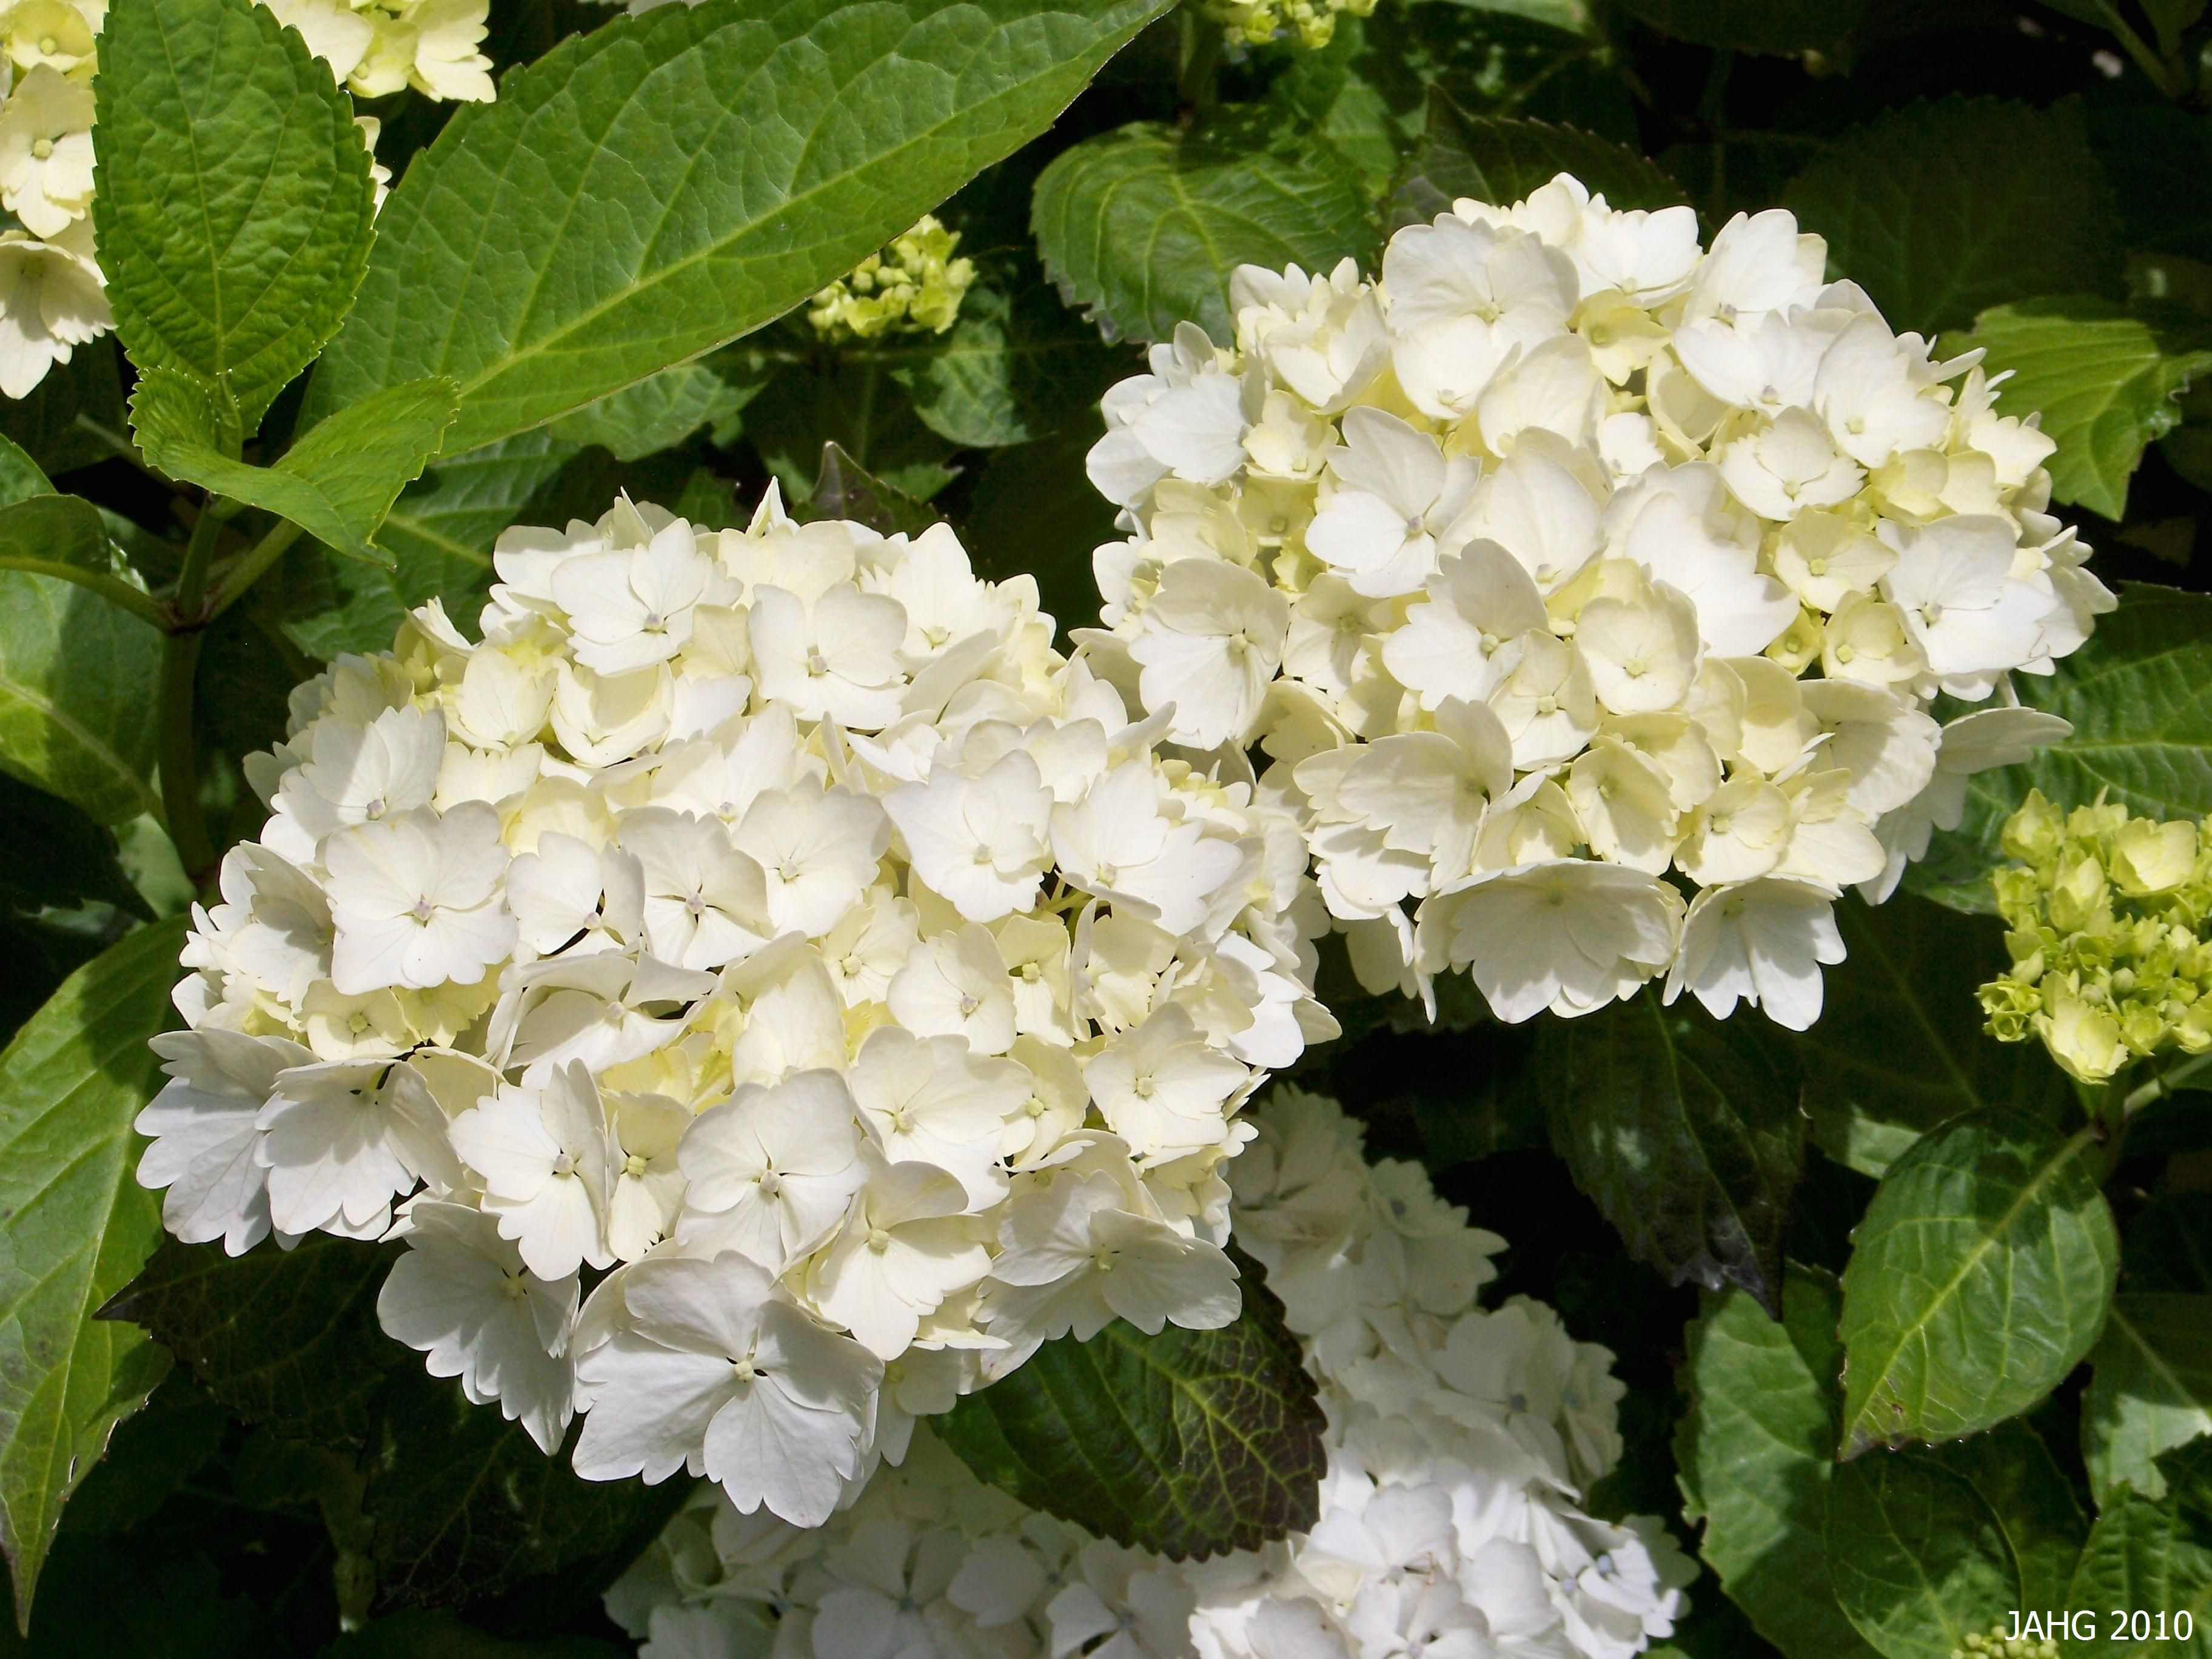 Lacecap Or Mophead I Can T Make Up My Mind Hydrangea Macrophylla Endless Summer Hydrangea Blushing Bride Hydrangea Care